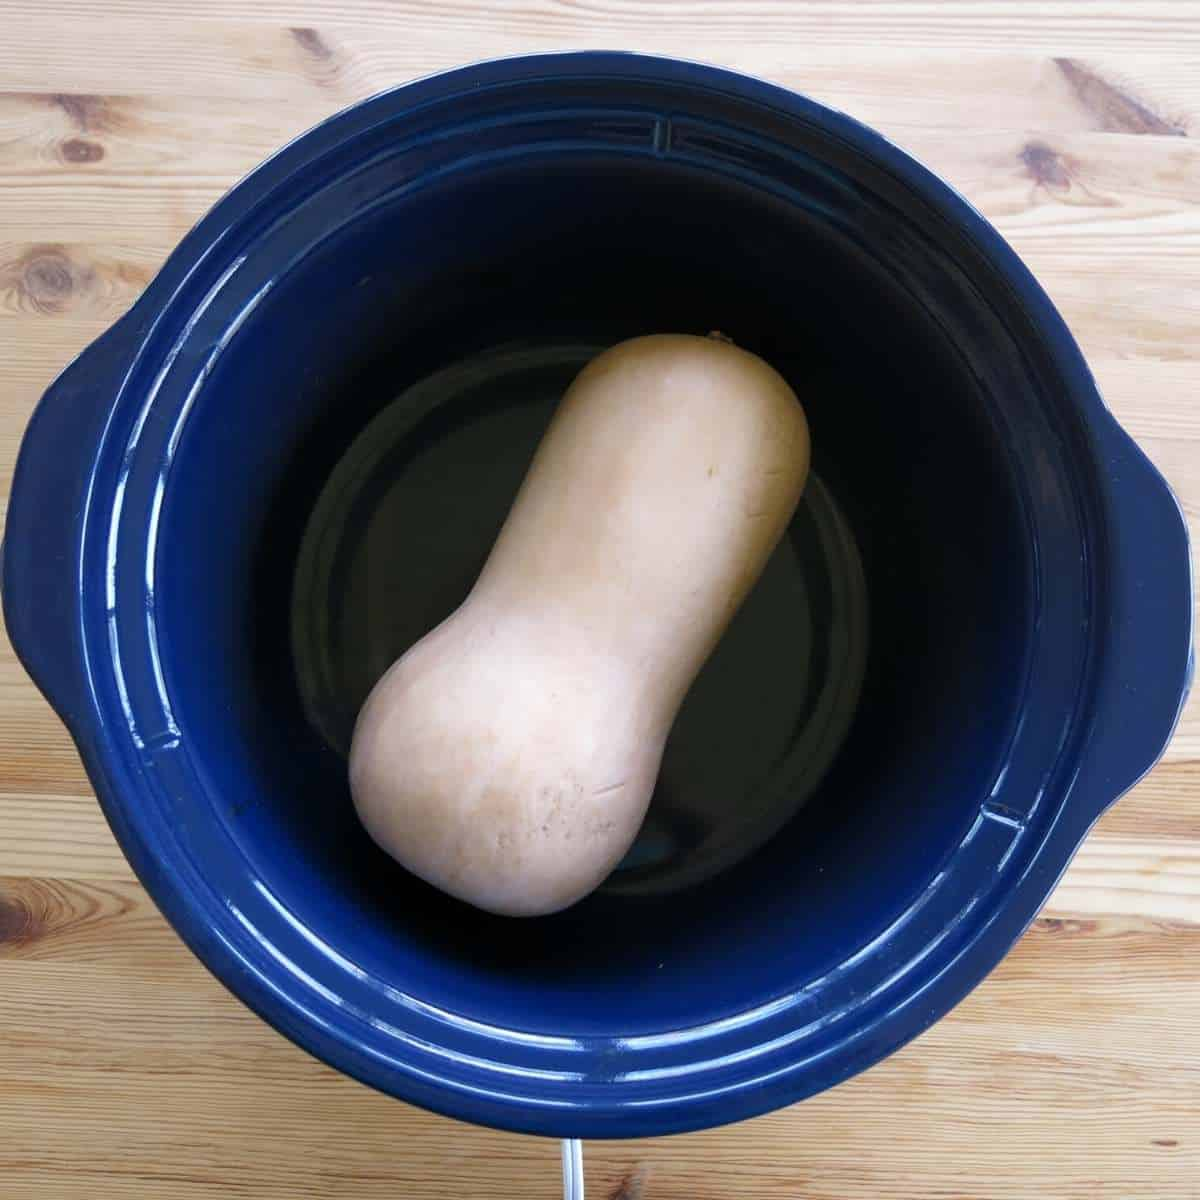 A whole butternut squash in a slow cooker with the cover off.